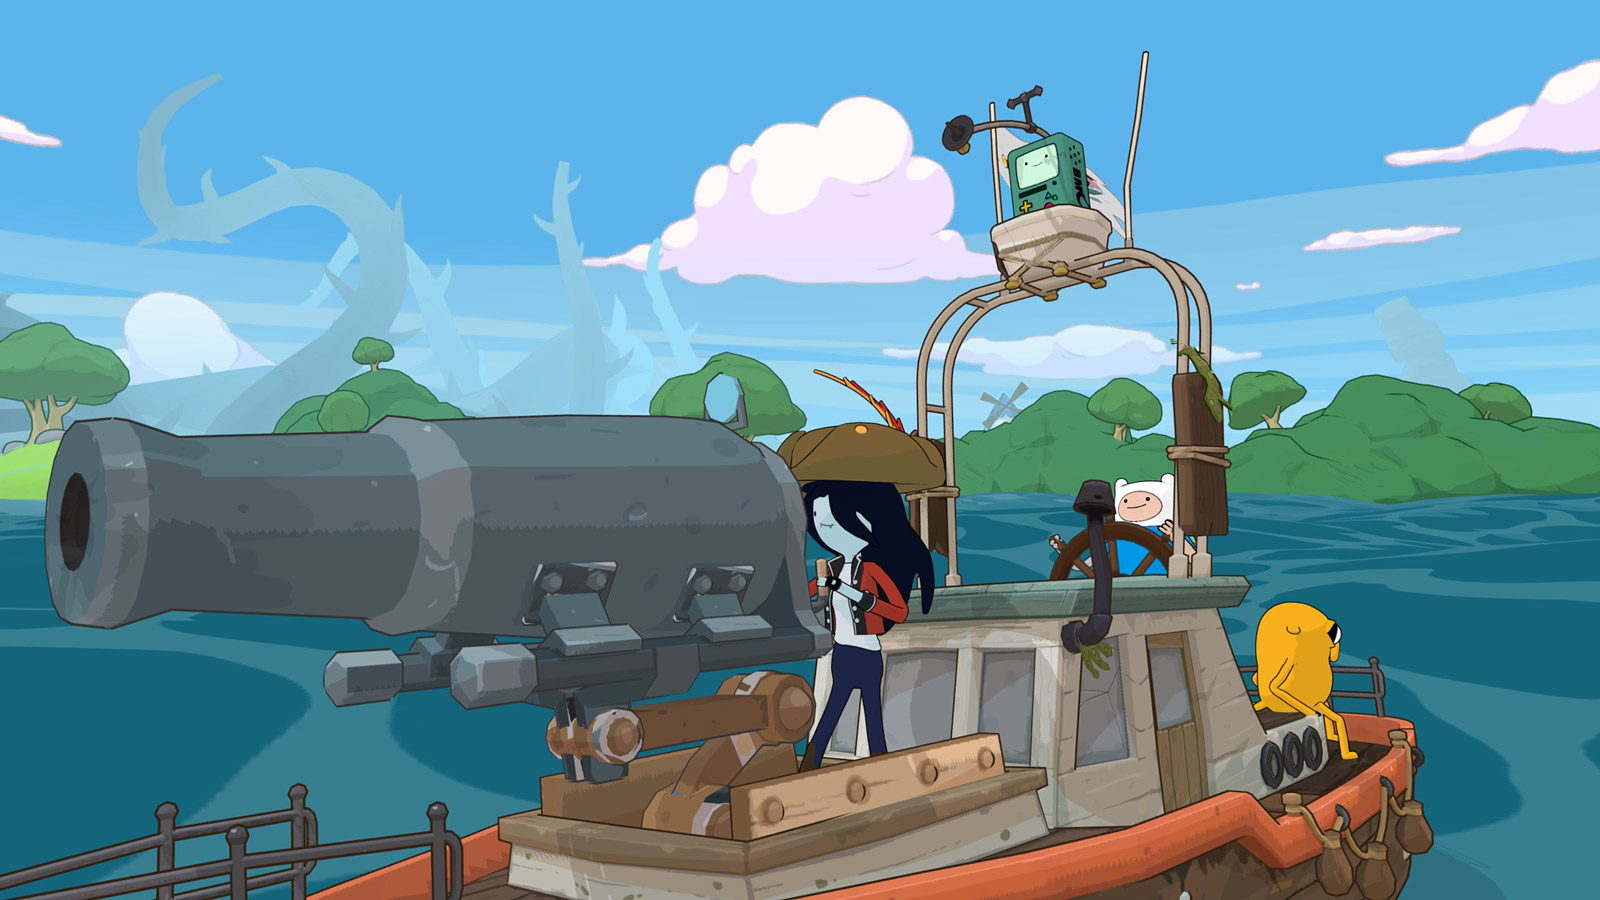 Free Adventure Time: Pirates of the Enchiridion Wallpaper in 1600x900